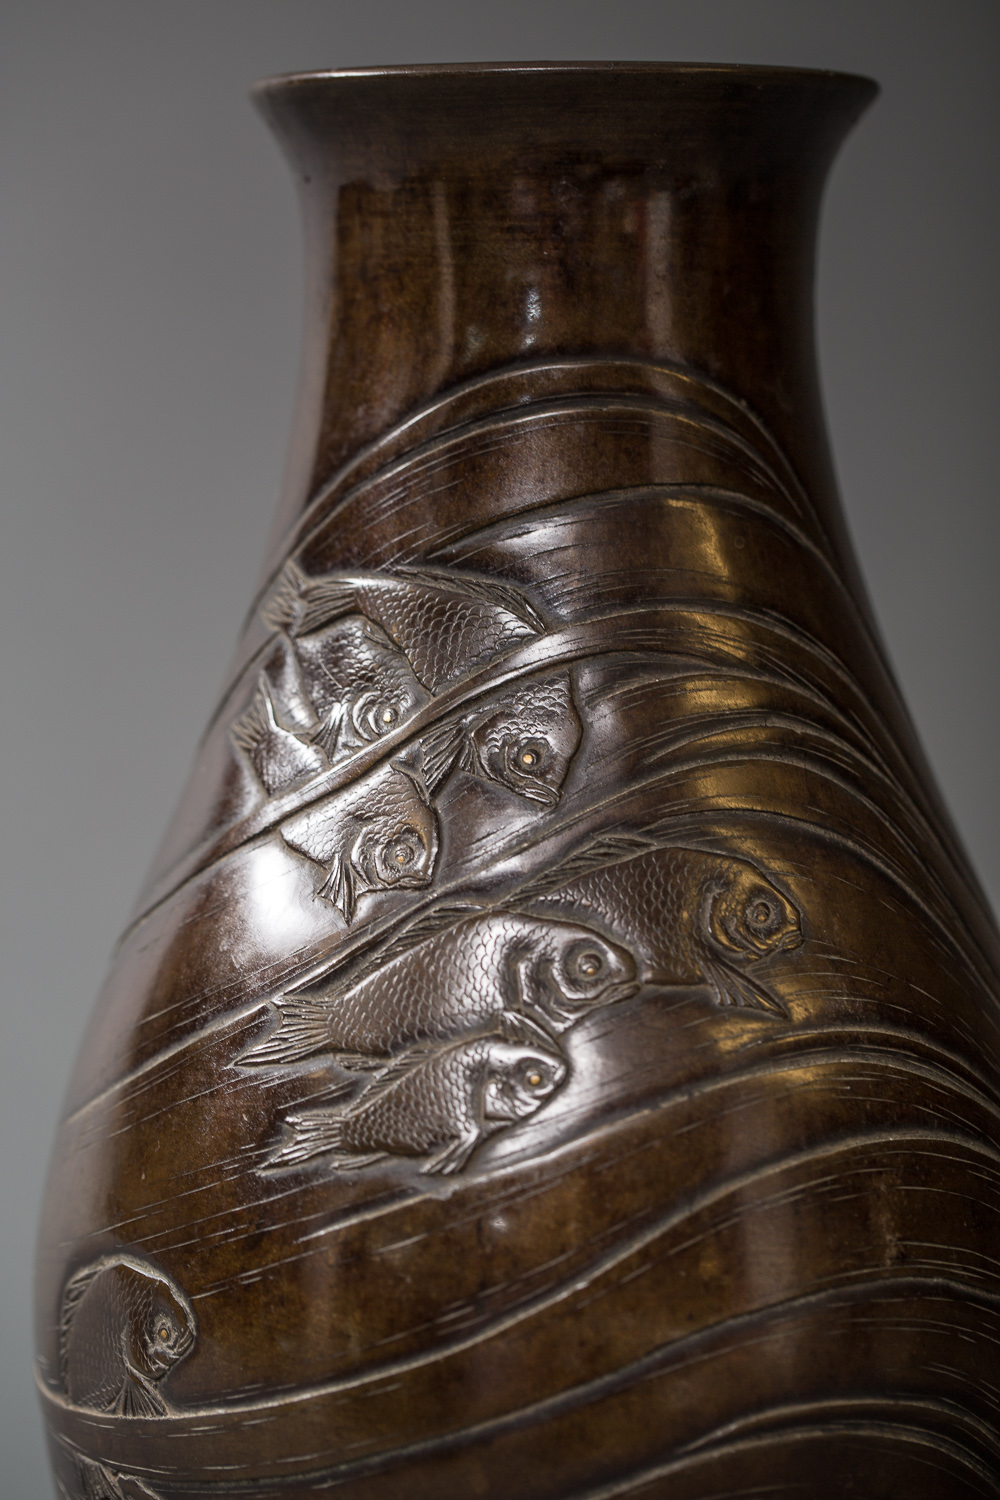 Japanese Meiji Period Bronze Vase with Swimming Fish